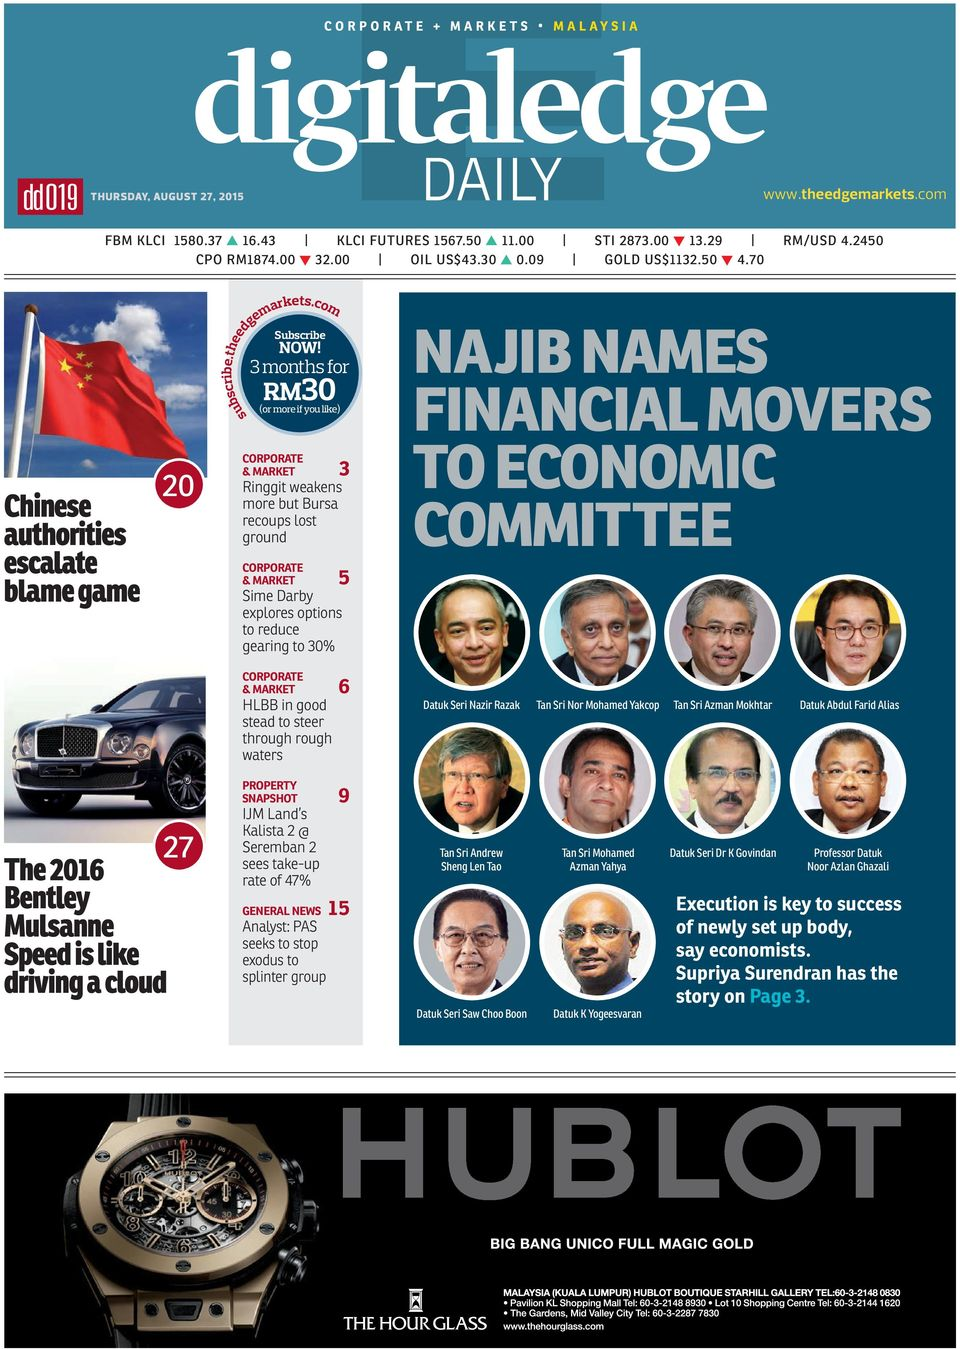 com CORPORATE & MARKET 3 Ringgit weakens more but Bursa recoups lost ground CORPORATE & MARKET 5 Sime Darby explores options to reduce gearing to 30% NAJIB NAMES FINANCIAL MOVERS TO ECONOMIC